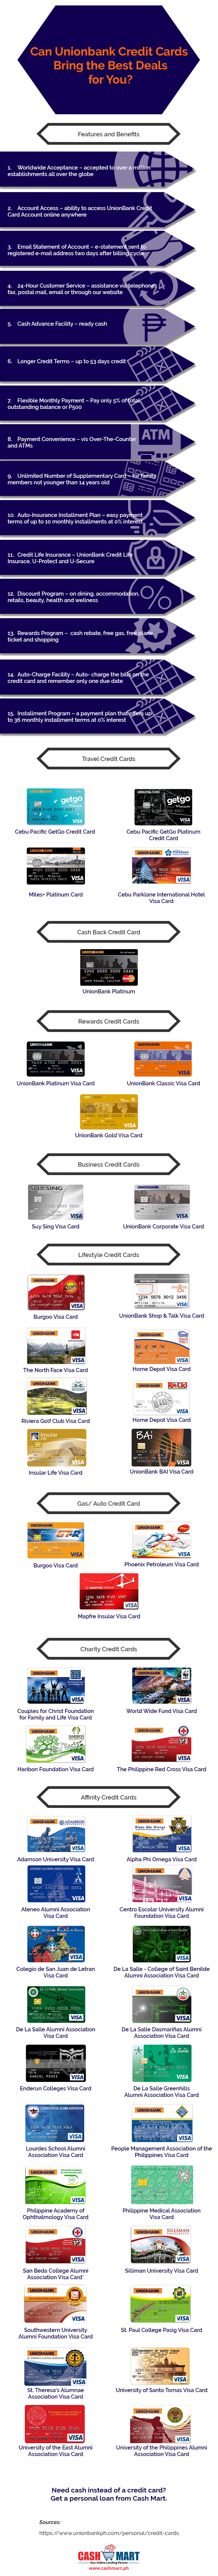 can-unionbank-credit-cards-bring-the-best-deals-for-you